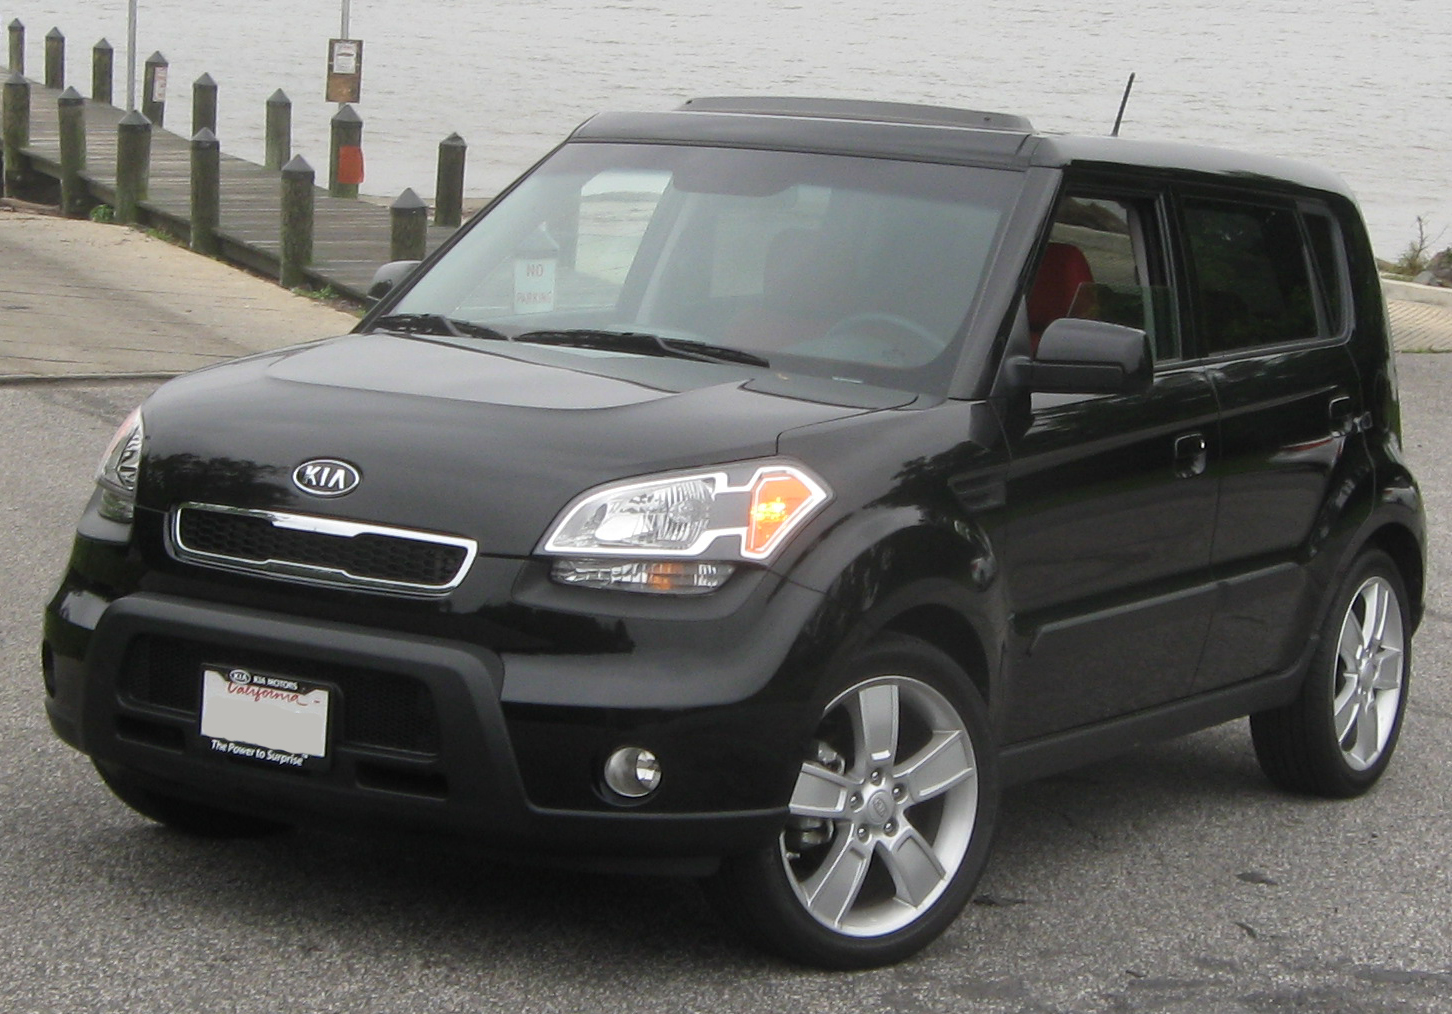 kia soul new car price specification review images. Black Bedroom Furniture Sets. Home Design Ideas